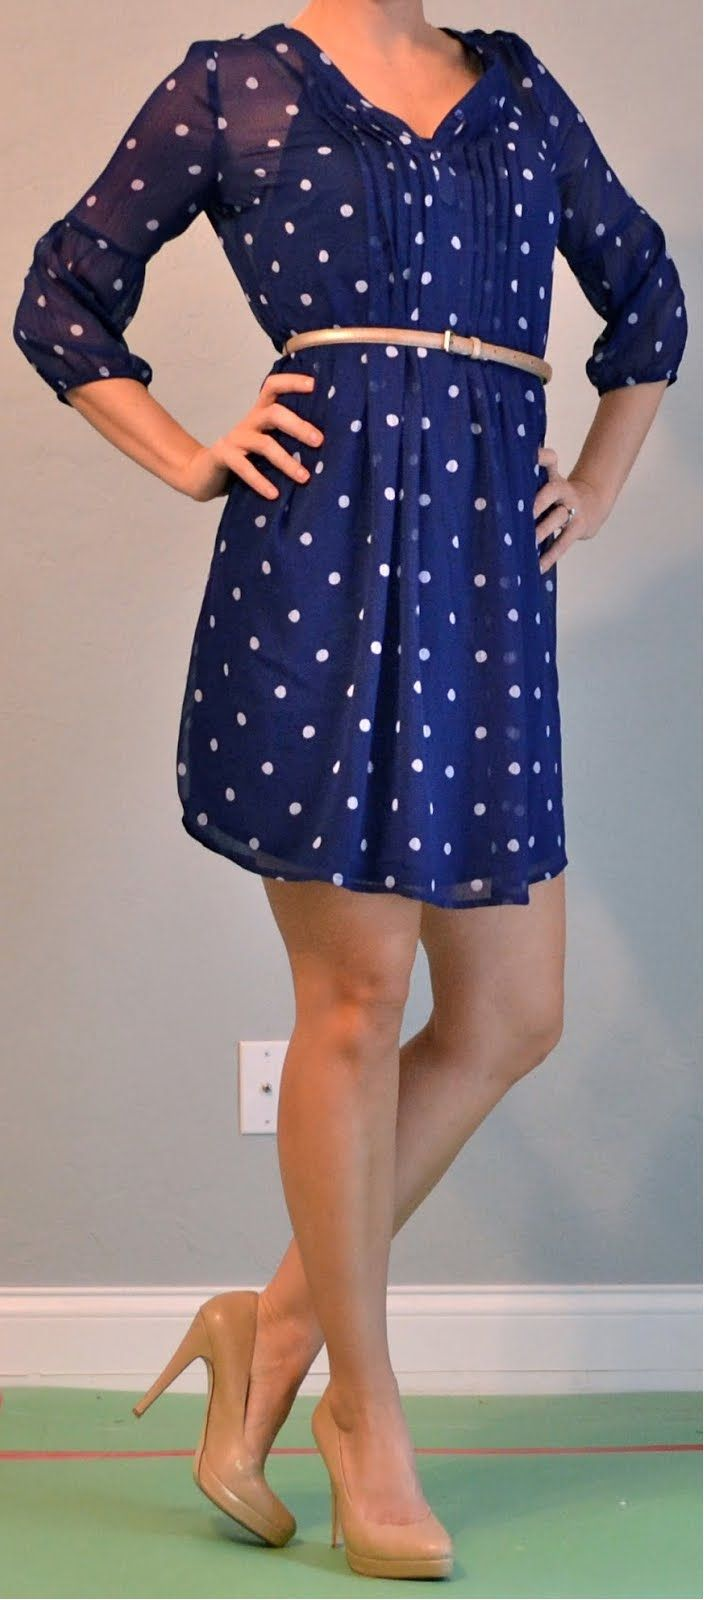 Outfit Posts: outfit post: polka dotted dress, gold belt outfitposts.blogspot.com